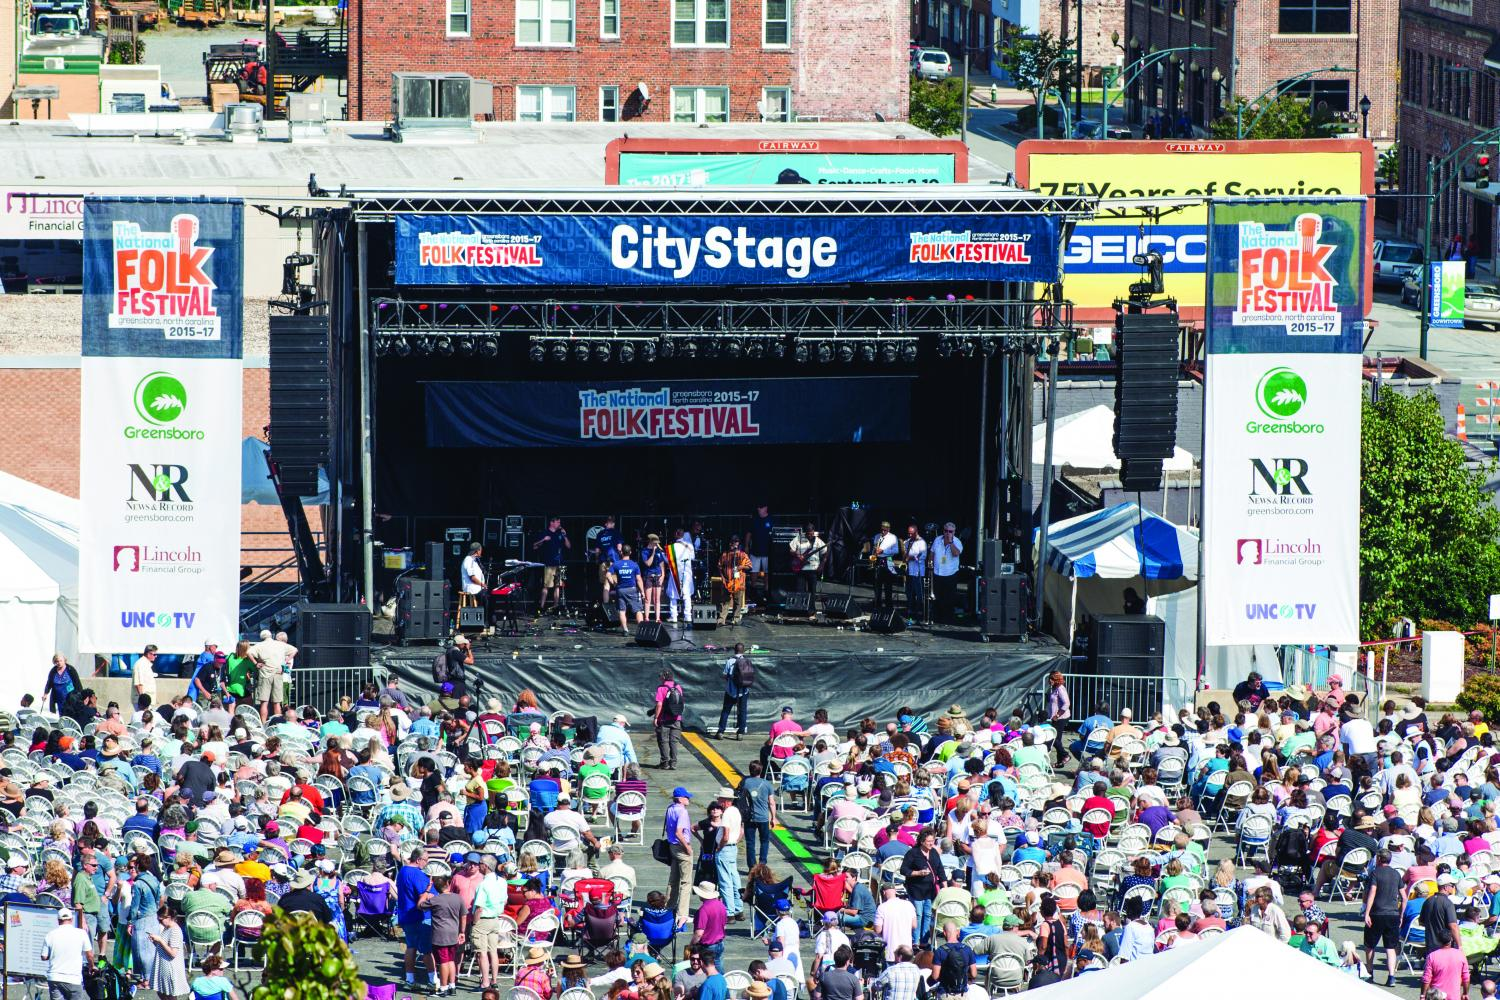 The National Folk Festival featured six different stages throughout downtown Greensboro featuring musical pieces, dance performances and folklife demonstrations. This is the last year the city of Greensboro will be hosting the free festival which took place from Friday, Sept. 8 to Sunday Sept. 10 2017.//Photo by Fernando Jimenez/The Guilfordian